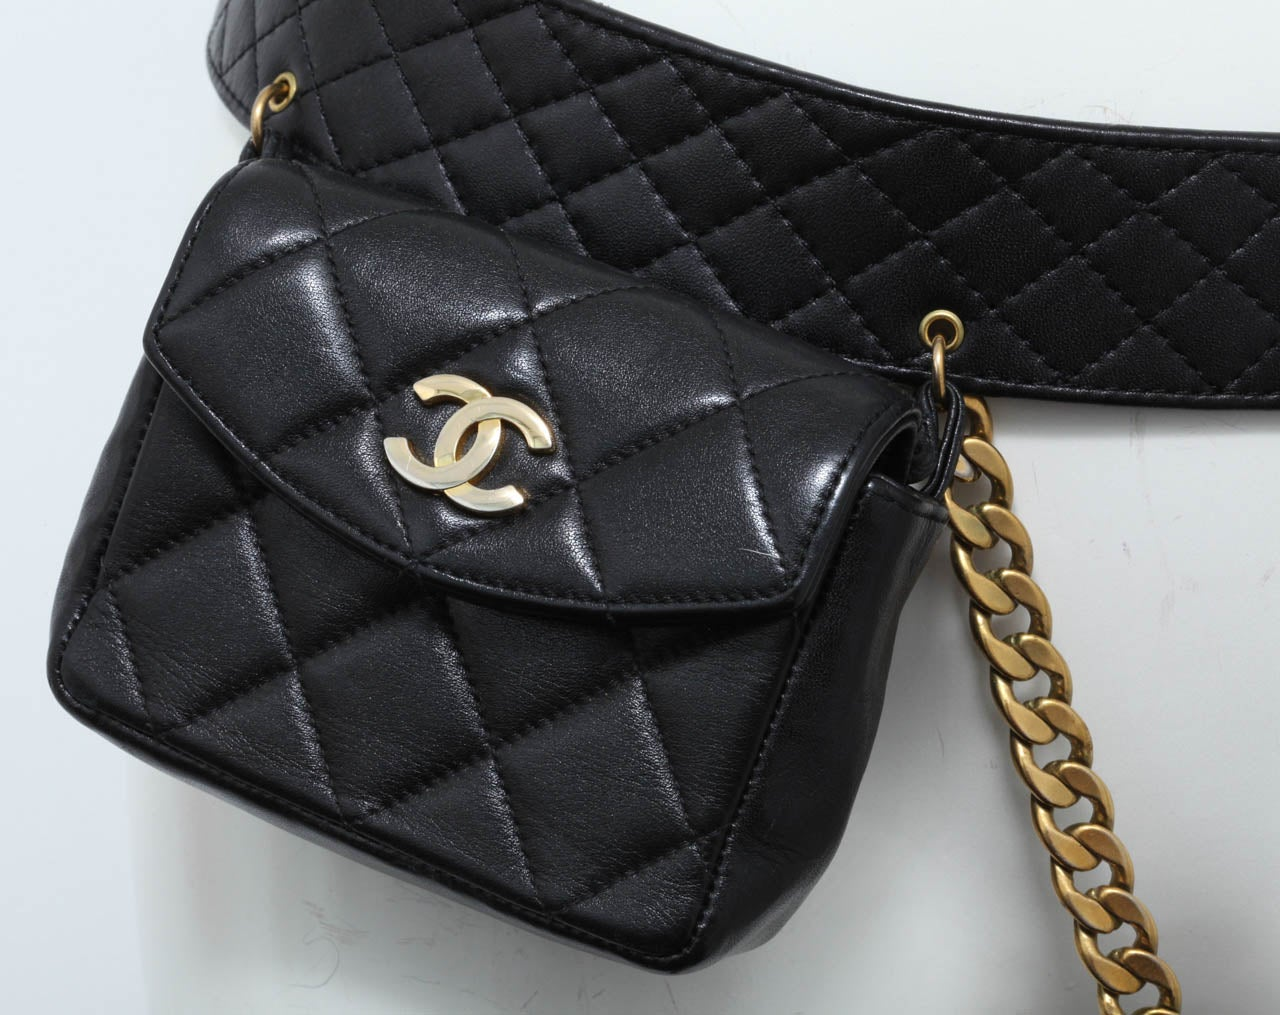 Vintage Chanel Belt with Pack and Gold Chain 4